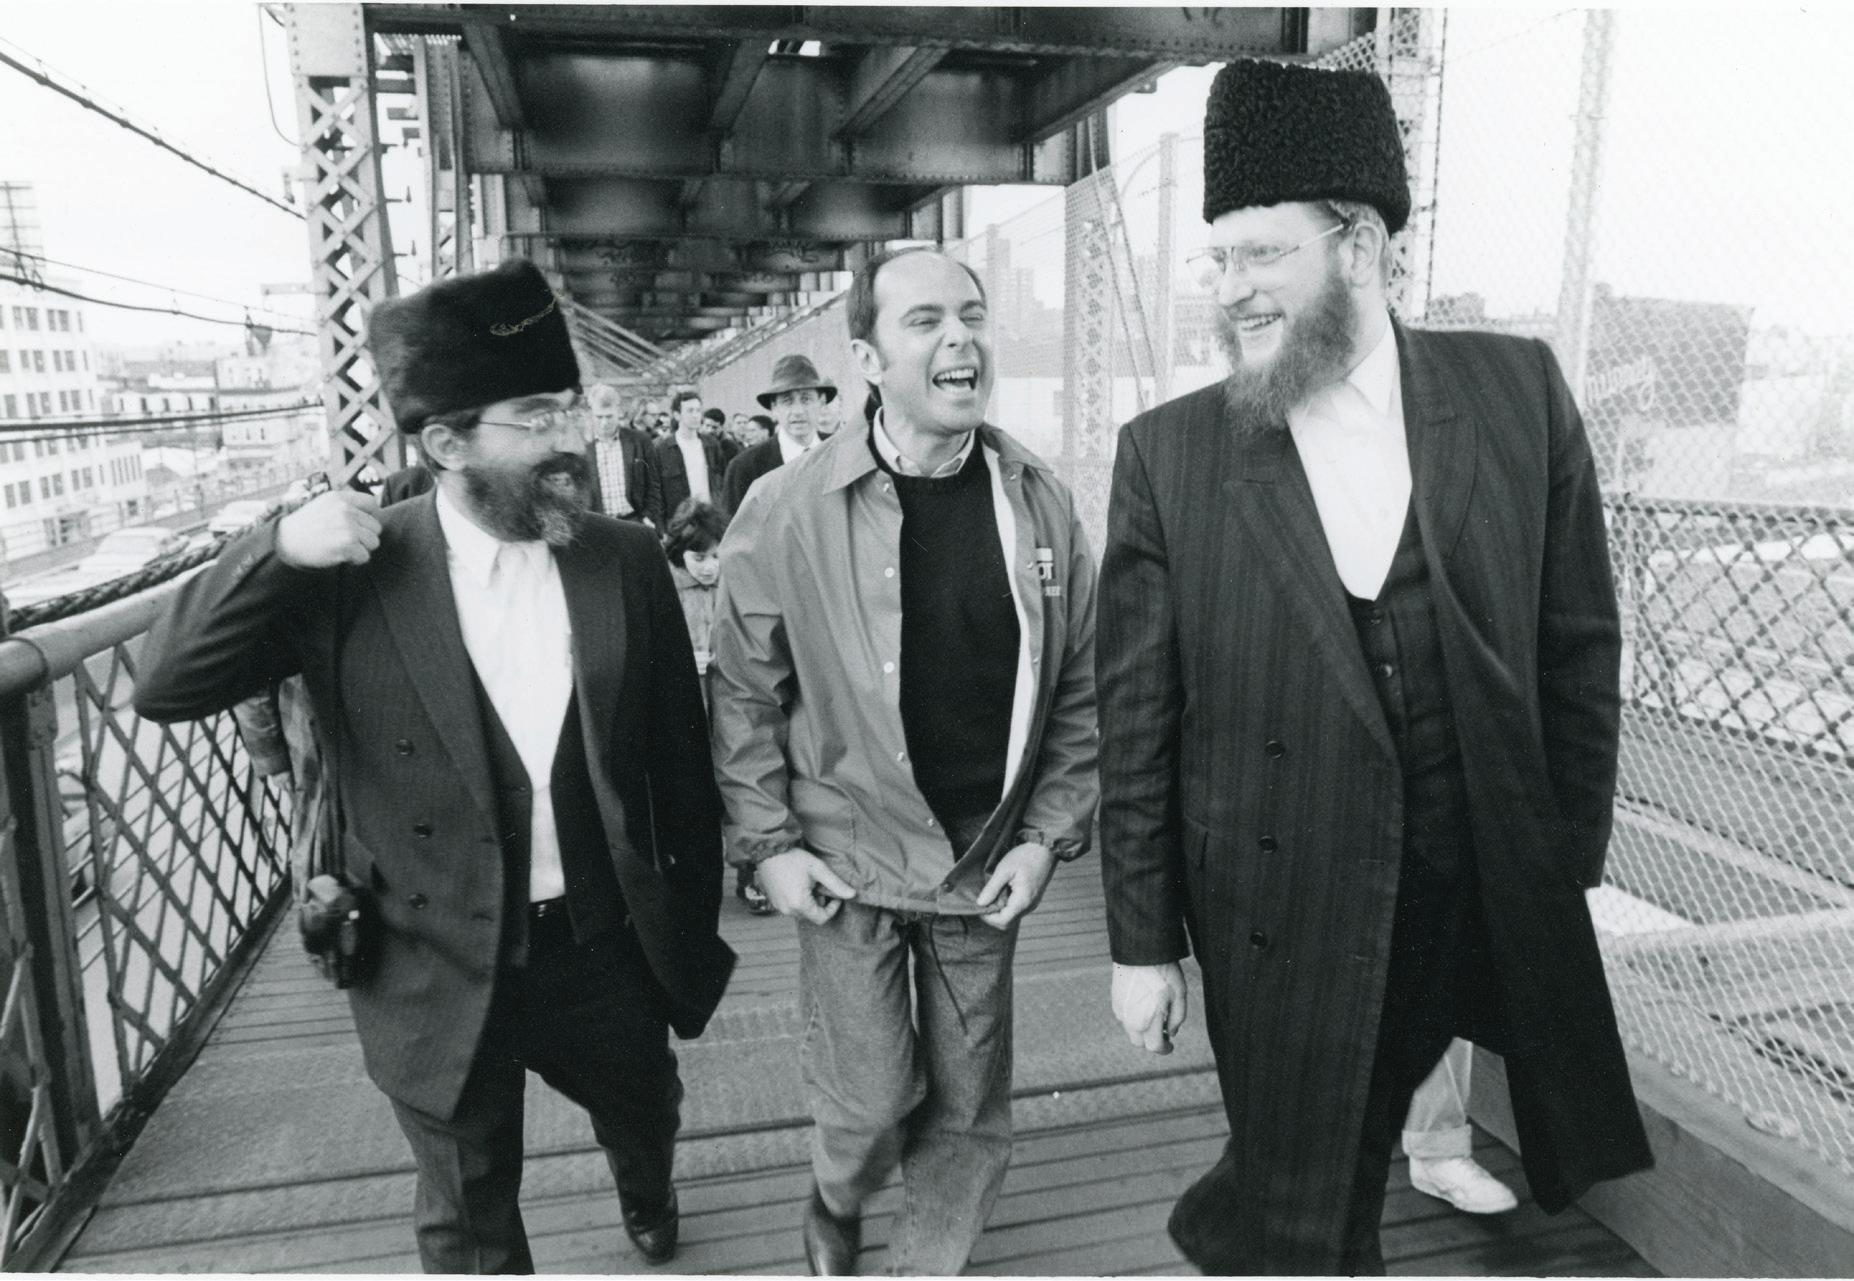 Page 26 of Judaism in Fashion